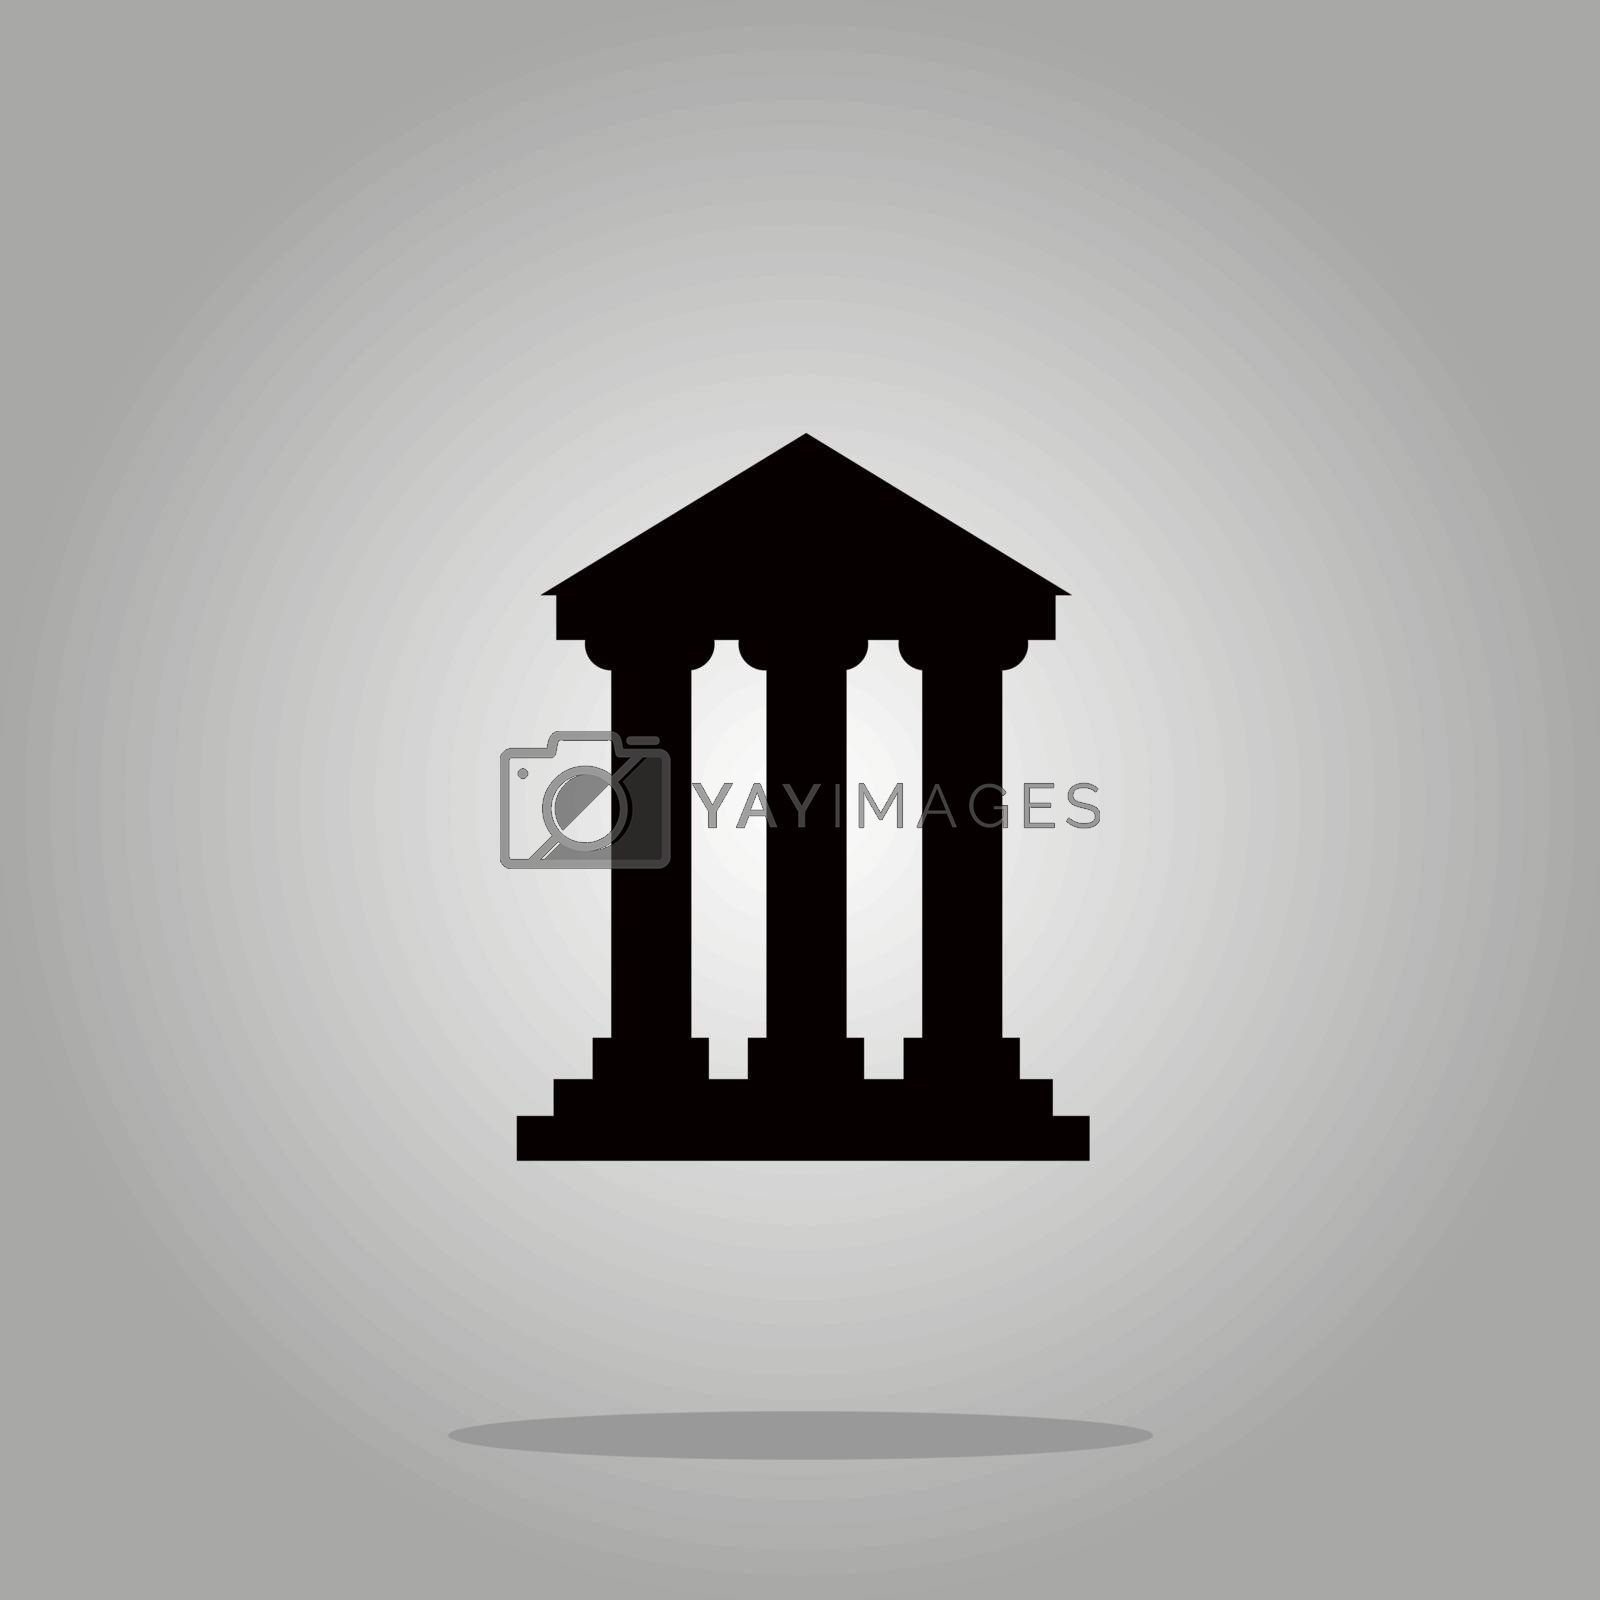 Royalty free image of Bank building sign icons, vector illustration. Flat design style by Alxyzt